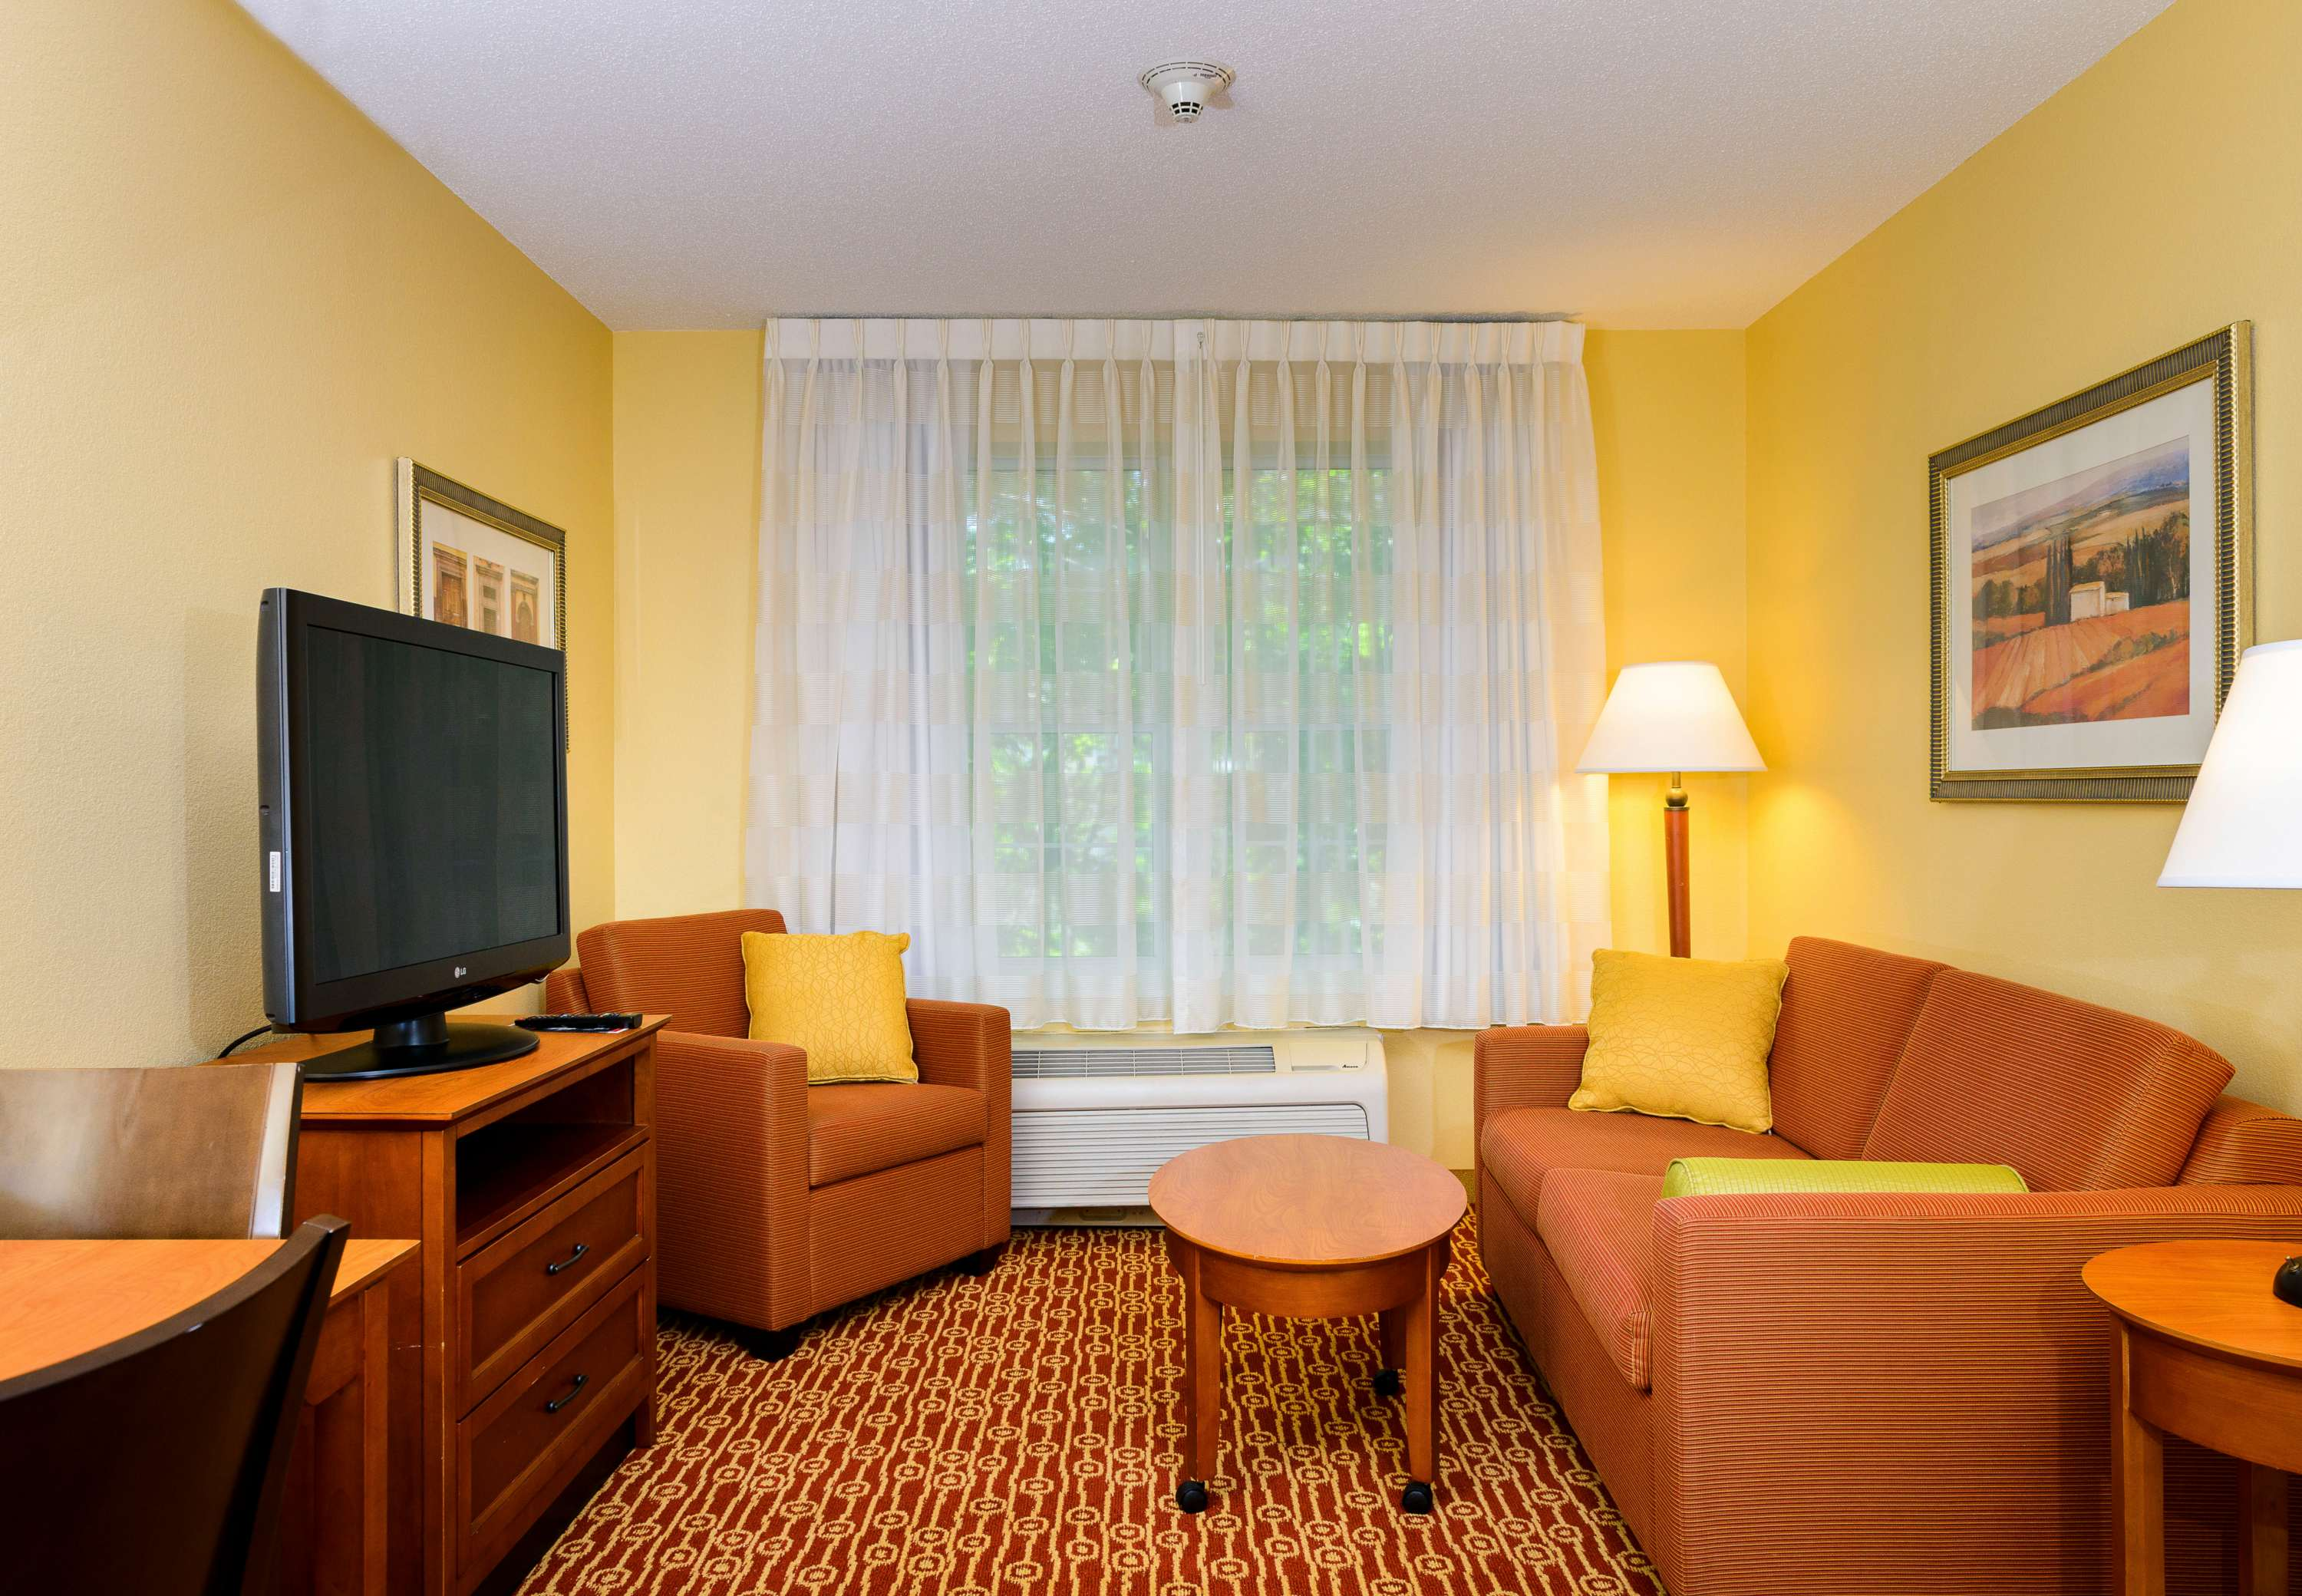 TownePlace Suites by Marriott Bowie Town Center image 5